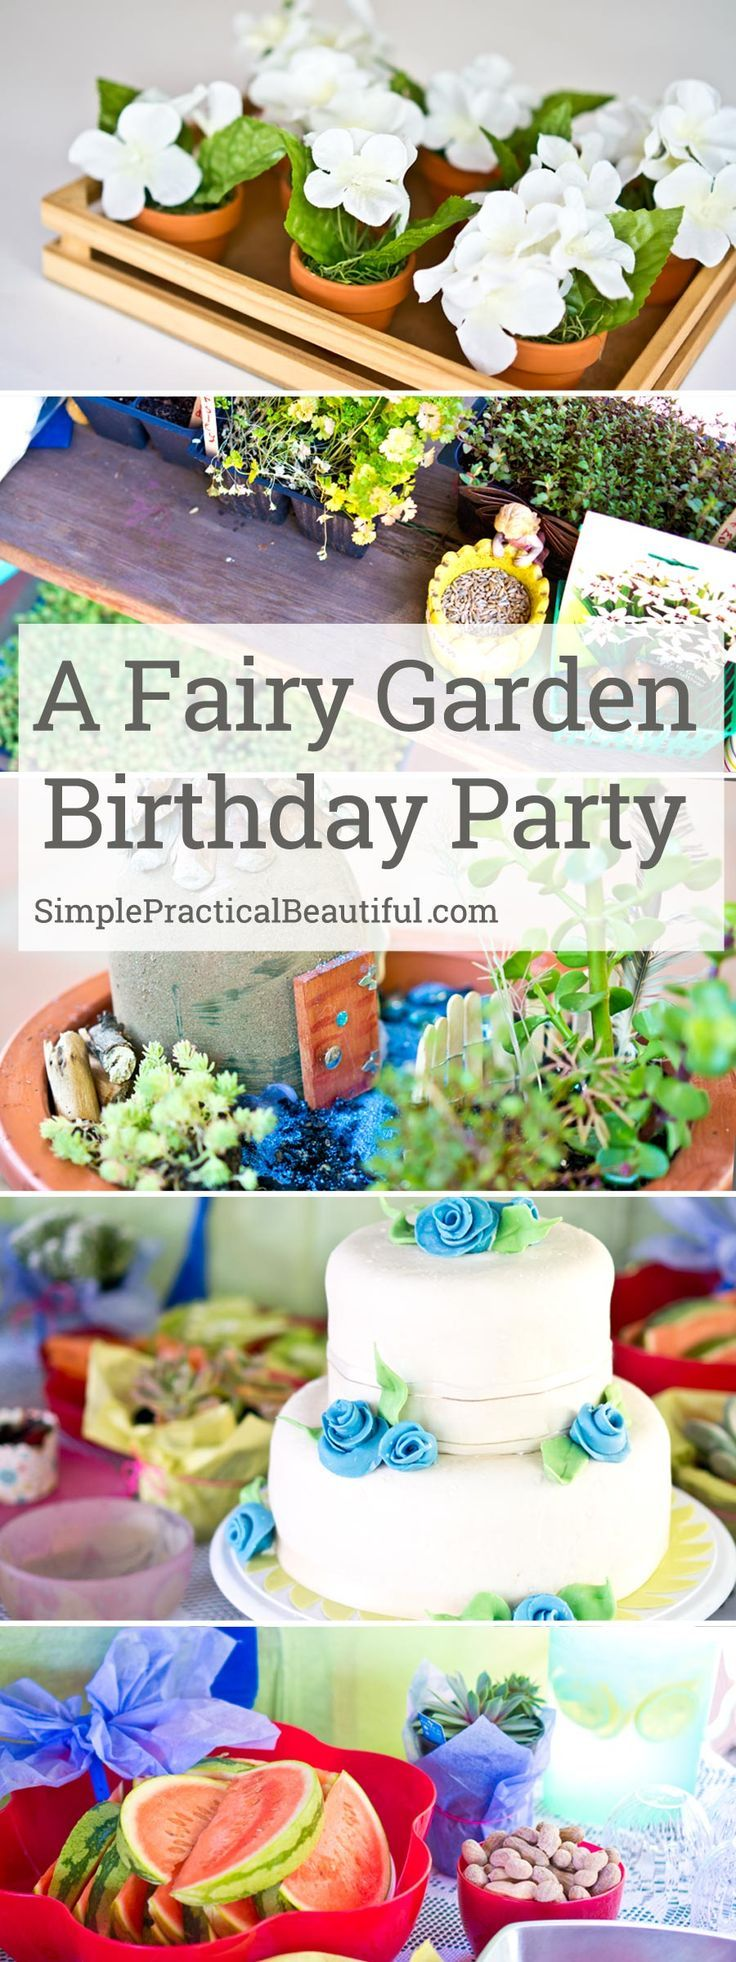 625 best Party Ideas images on Pinterest   Birthday party ideas ...